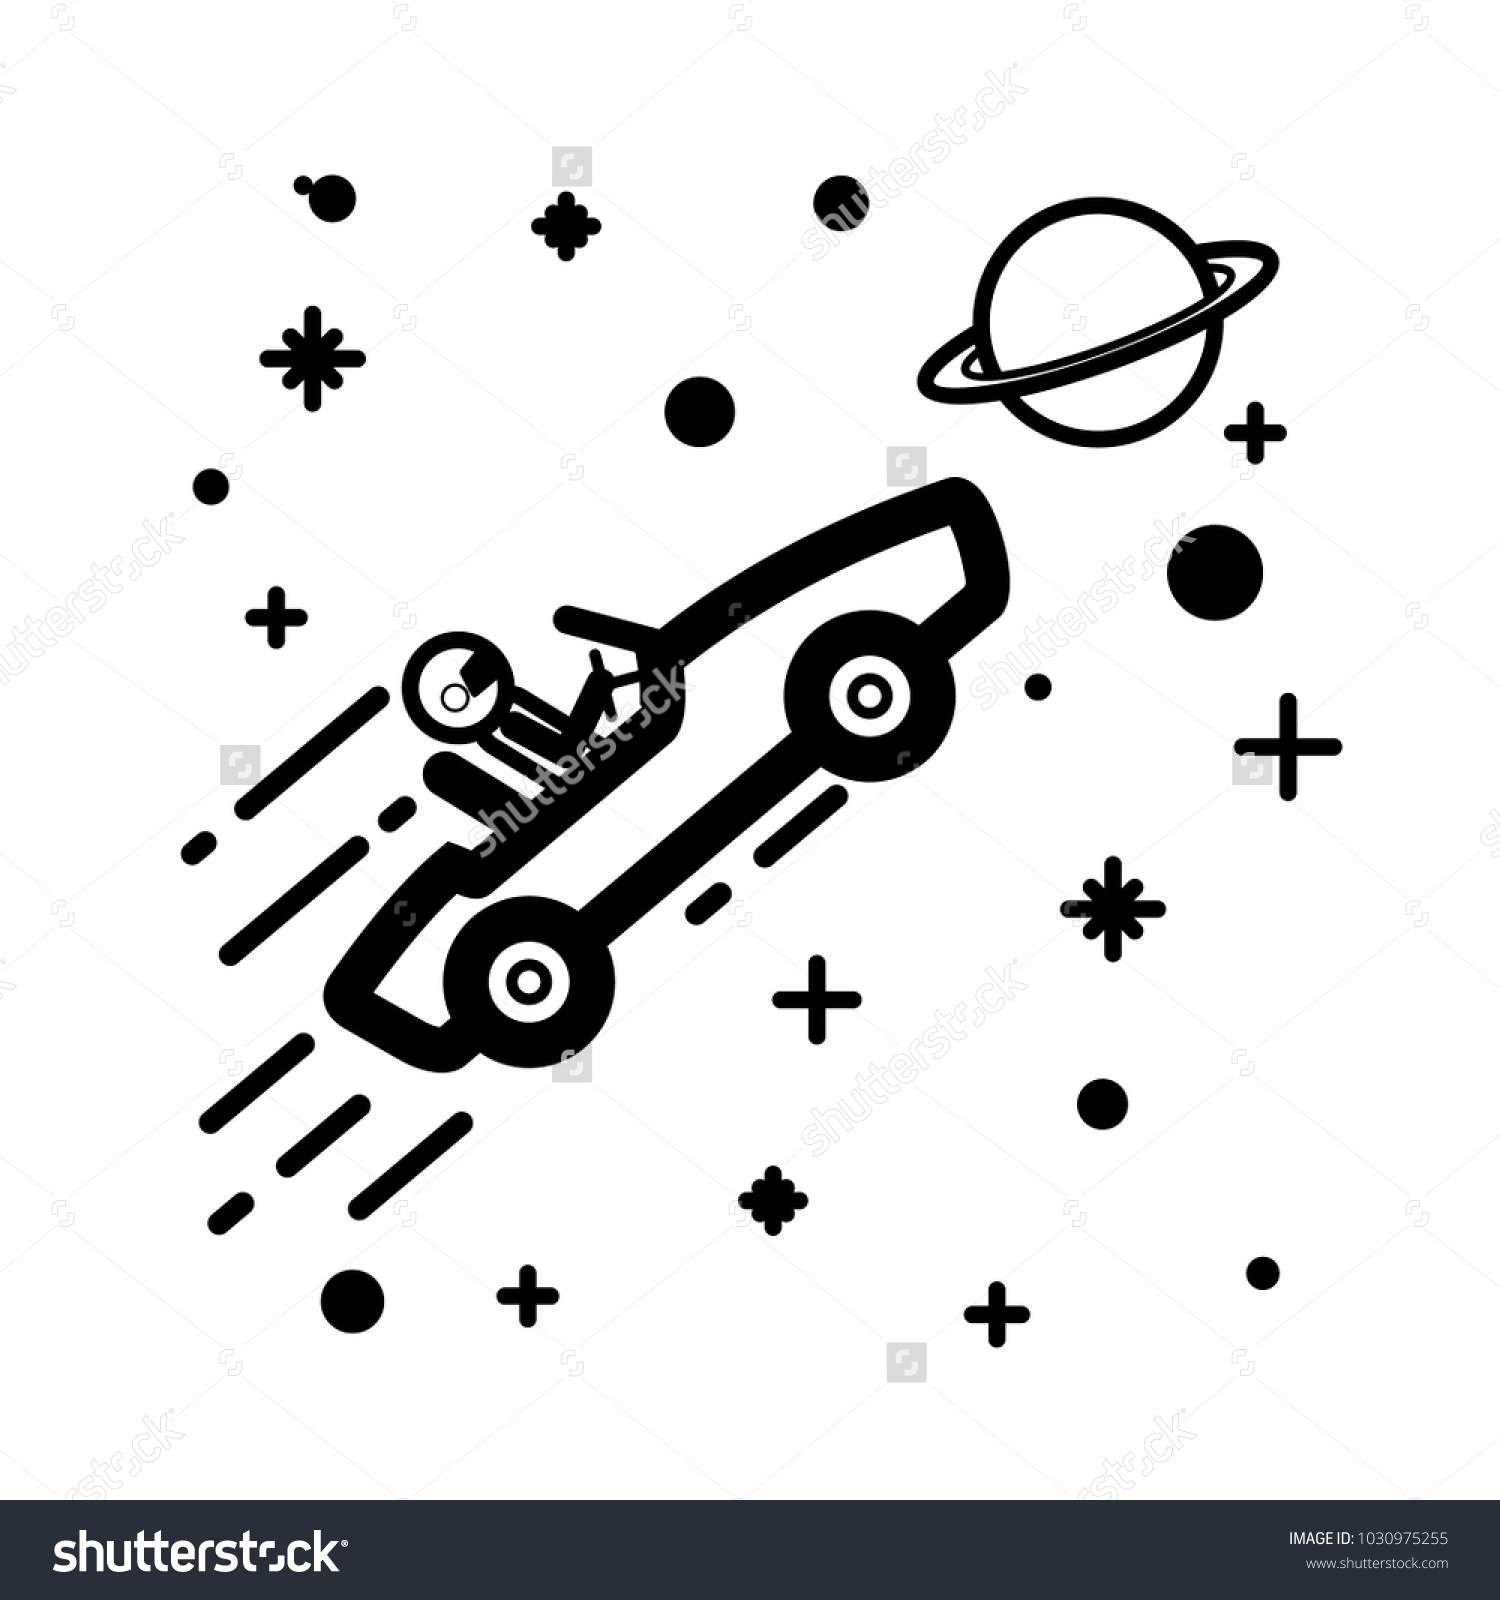 Space icon space tesla roadster image stock vector 1030975255 space icon with space tesla roadster image buycottarizona Gallery